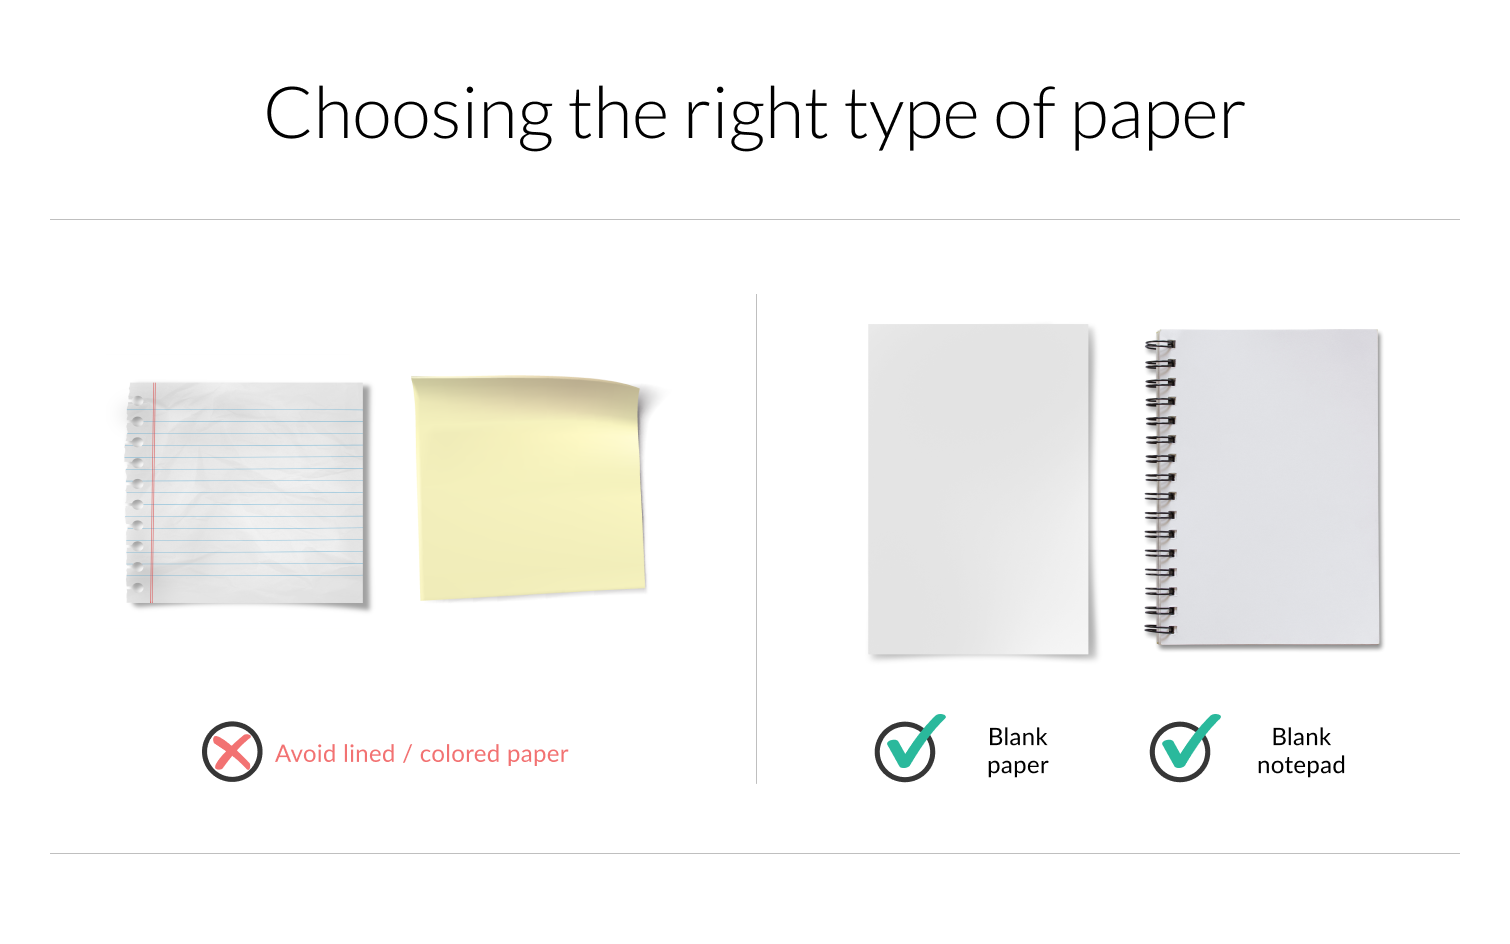 Choosing the right type of paper